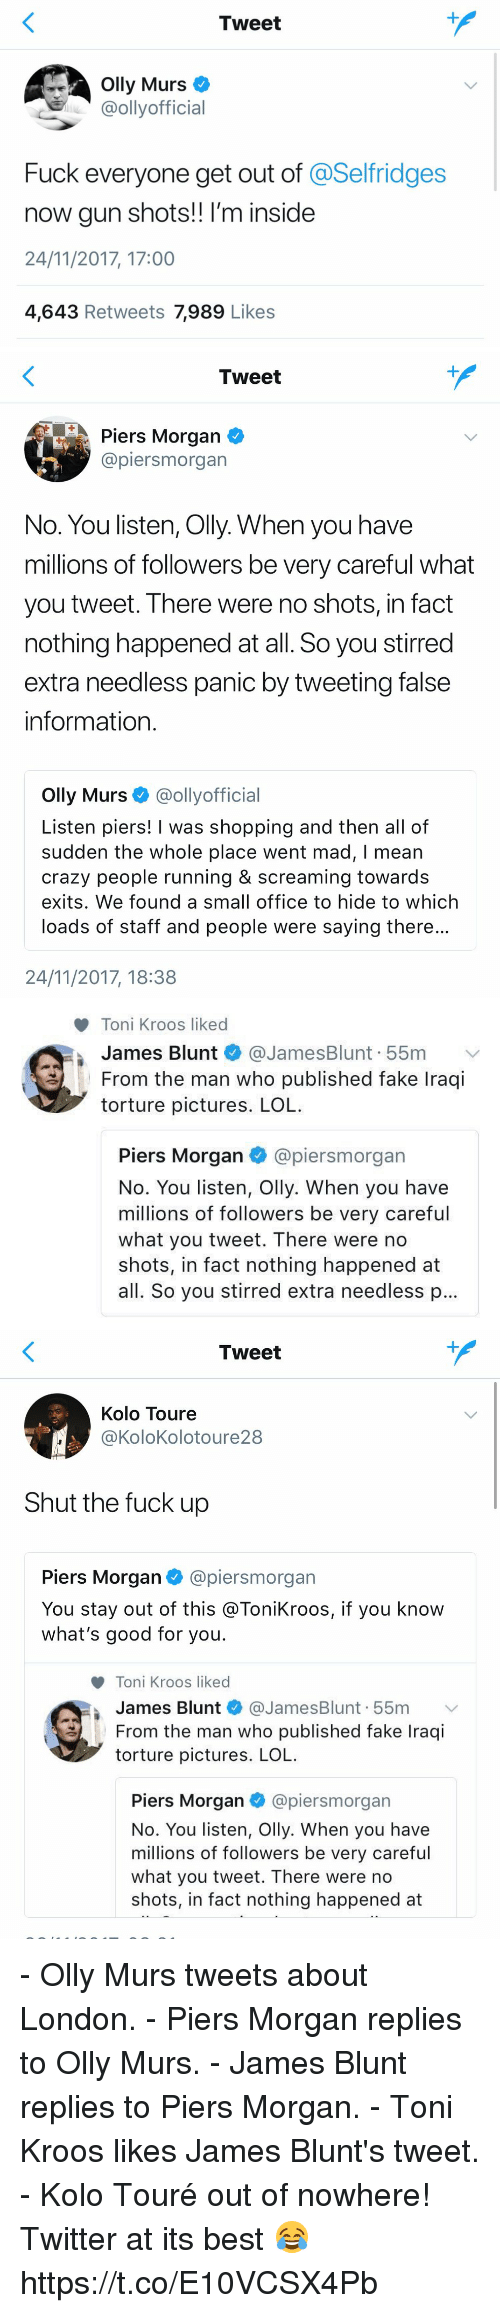 Blunts, Crazy, and Fake: Tweet  Olly Murs  @ollyofficial  Fuck everyone get out of @Selfridges  now gun shots!! I'm inside  24/11/2017, 17:00  4,643 Retweets 7,989 Likes   Tweet  Piers Morgan  @piersmorgan  No. You listen, Olly. When you have  millions of followers be very careful what  you tweet. There were no shots, in fact  nothing happened at all. So you stirred  extra needless panic by tweeting false  information  Olly Murs @ollyofficial  Listen piers! I was shopping and then all of  sudden the whole place went mad, I mean  crazy people running & screaming towards  exits. We found a small office to hide to which  loads of staff and people were saying there  24/11/2017, 18:38   Toni Kroos liked  James Blunt * @JamesBlunt. 55m  From the man who published fake Iraqi  torture pictures. LOL  ﹀  I  Piers Morgan @piersmorgan  No. You listen, Olly. When you have  millions of followers be very careful  what you tweet. There were no  shots, in fact nothing happened at  all. So you stirred extra needless p   Tweet  Kolo Toure  @KoloKolotoure28  Shut the fuck up  Piers Morgan@piersmorgan  You stay out of this @ToniKroos, if you know  what's good for you.  Toni Kroos liked  James Blunt * @JamesBlunt. 55m 、  From the man who published fake Iraqi  torture pictures. LOL  Piers Morgan@piersmorgan  No. You listen, Olly. When you have  millions of followers be very careful  what you tweet. There were no  shots, in fact nothing happened at - Olly Murs tweets about London. - Piers Morgan replies to Olly Murs. - James Blunt replies to Piers Morgan. - Toni Kroos likes James Blunt's tweet. - Kolo Touré out of nowhere!  Twitter at its best 😂 https://t.co/E10VCSX4Pb